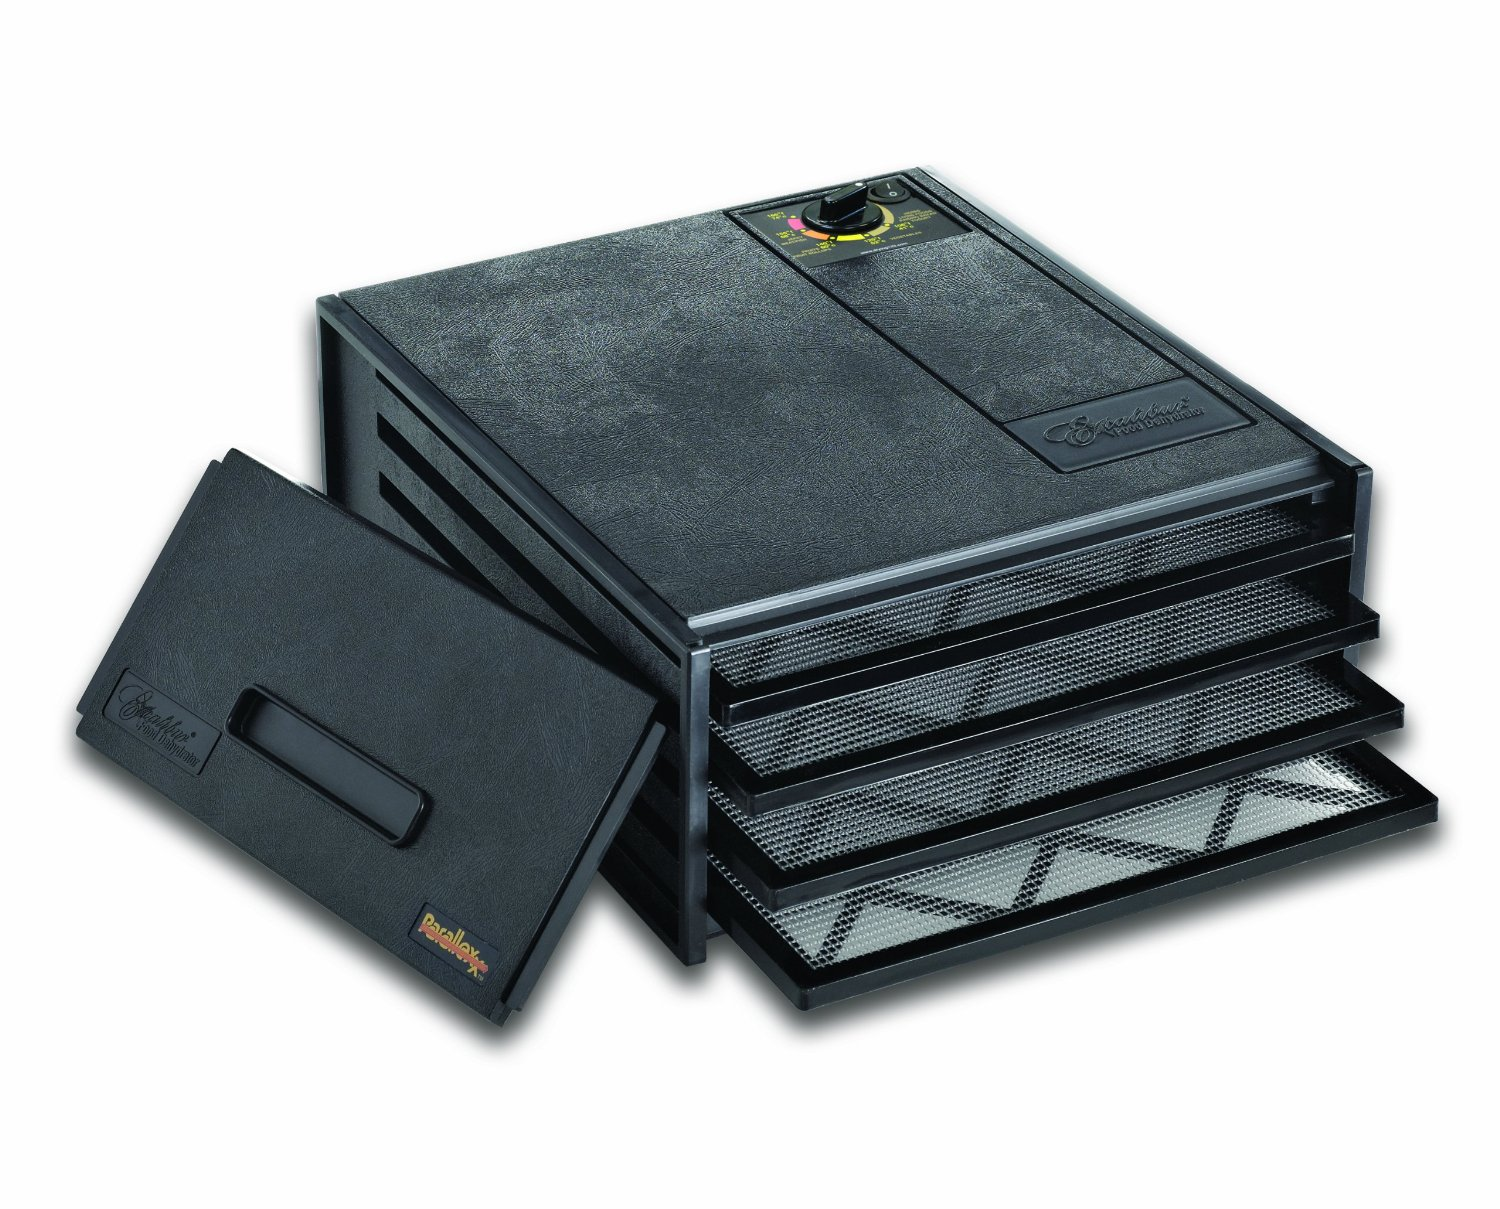 EXCALIBUR 2400 BLACK NON TIMER 4 TRAY DEHYDRATOR GIVES YOU